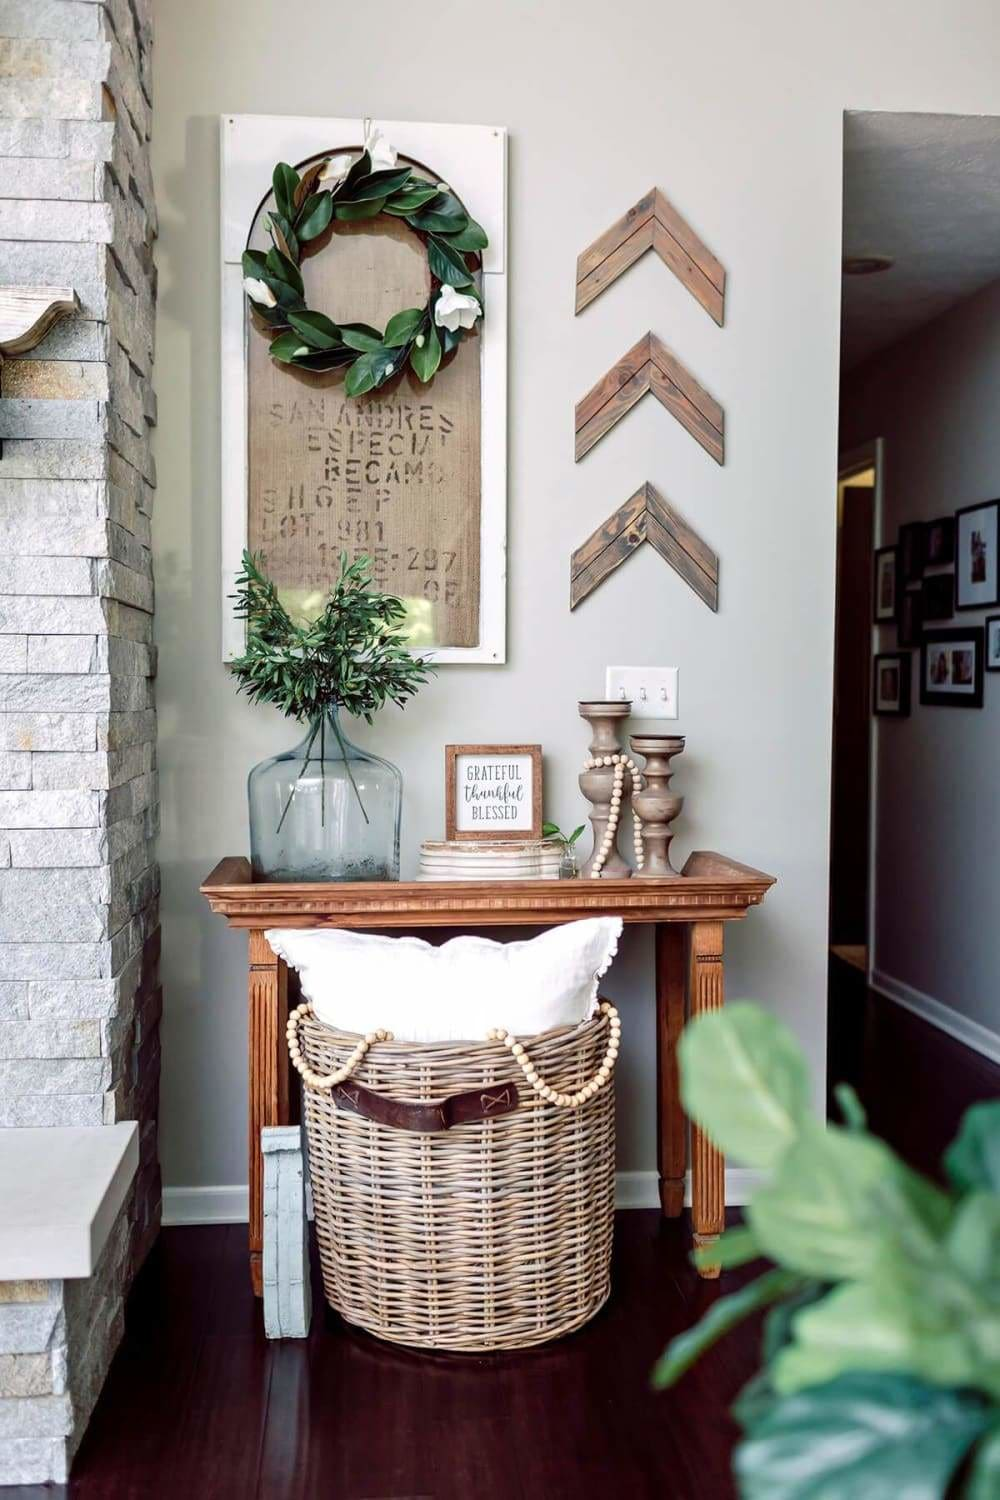 A perfect way to bring out the feel of rustic or modern farmhouse is with the use of old burlap sacks. Here the burlap sack is mounted over a painted white background to make it pop from the light gray walls. To create some color, they've used a bold green wreath with white blossoms hanging over the burlap sack. They took three rustic frame corners to create a chevron pattern and place them off to the side to create more contrast from the gray walls. The wooden table below along with the wicker basket filled with throws help bring together the warm rustic charm of the room.